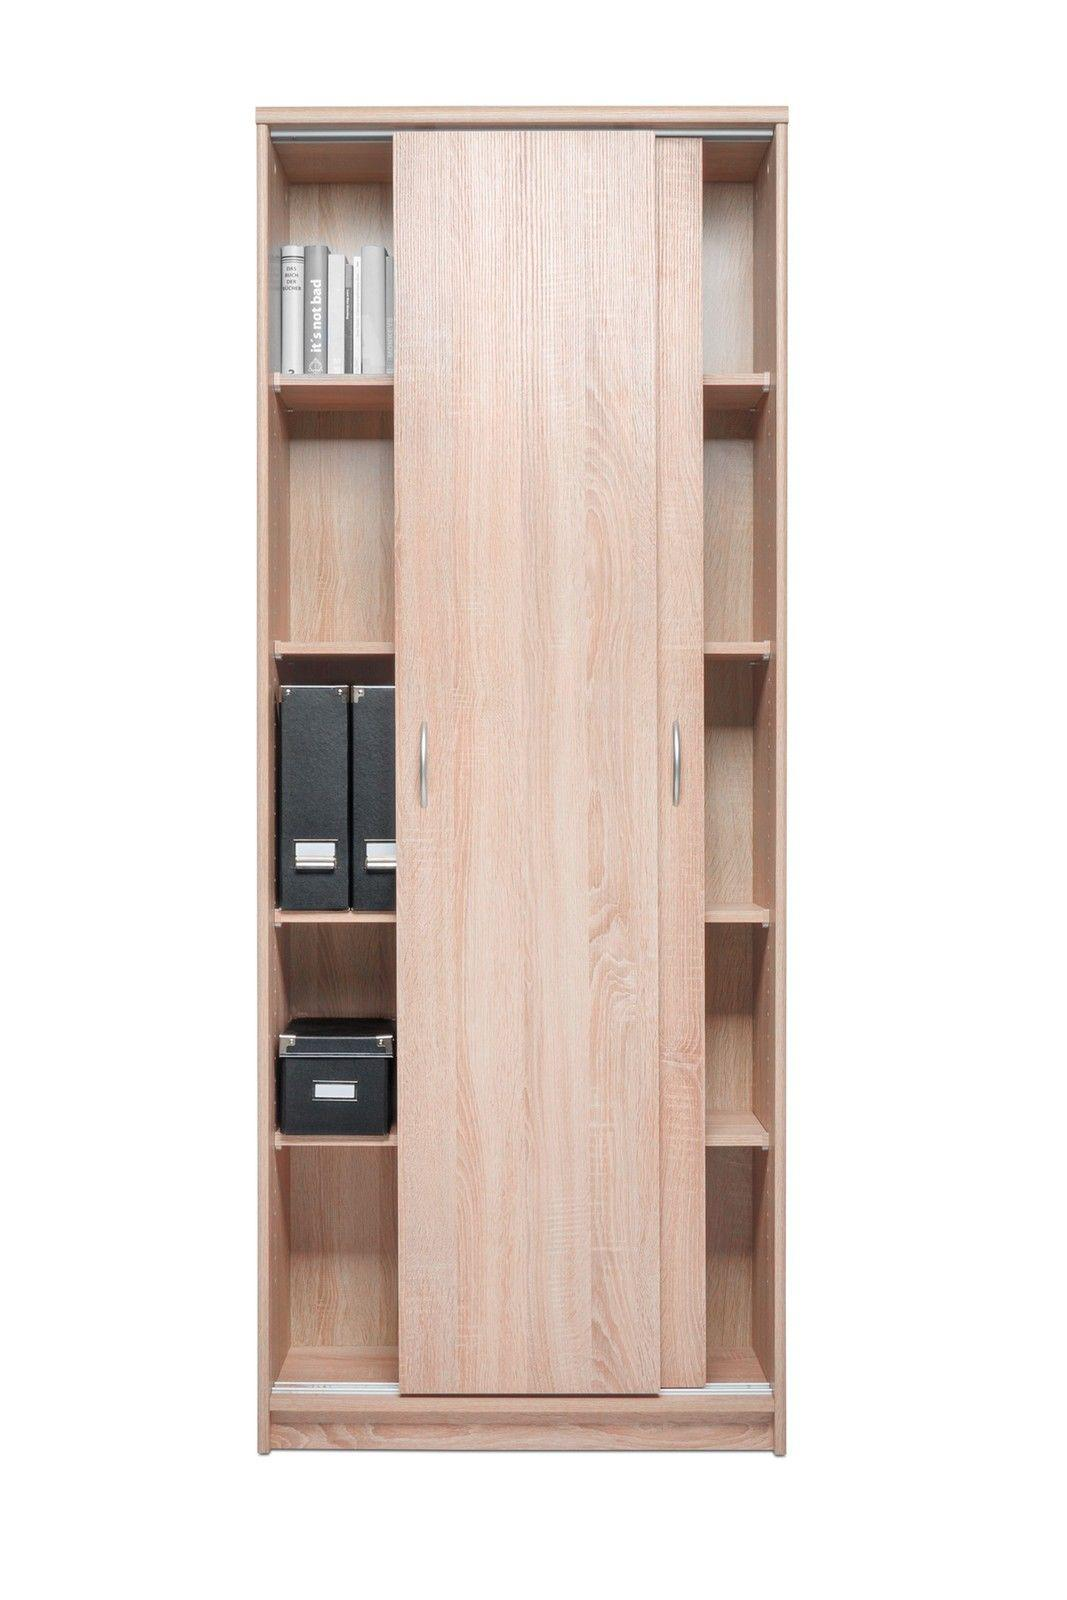 schrank schiebet renschrank bonn 14 74x188 cm dekor sonoma eiche kaufen bei sylwia. Black Bedroom Furniture Sets. Home Design Ideas